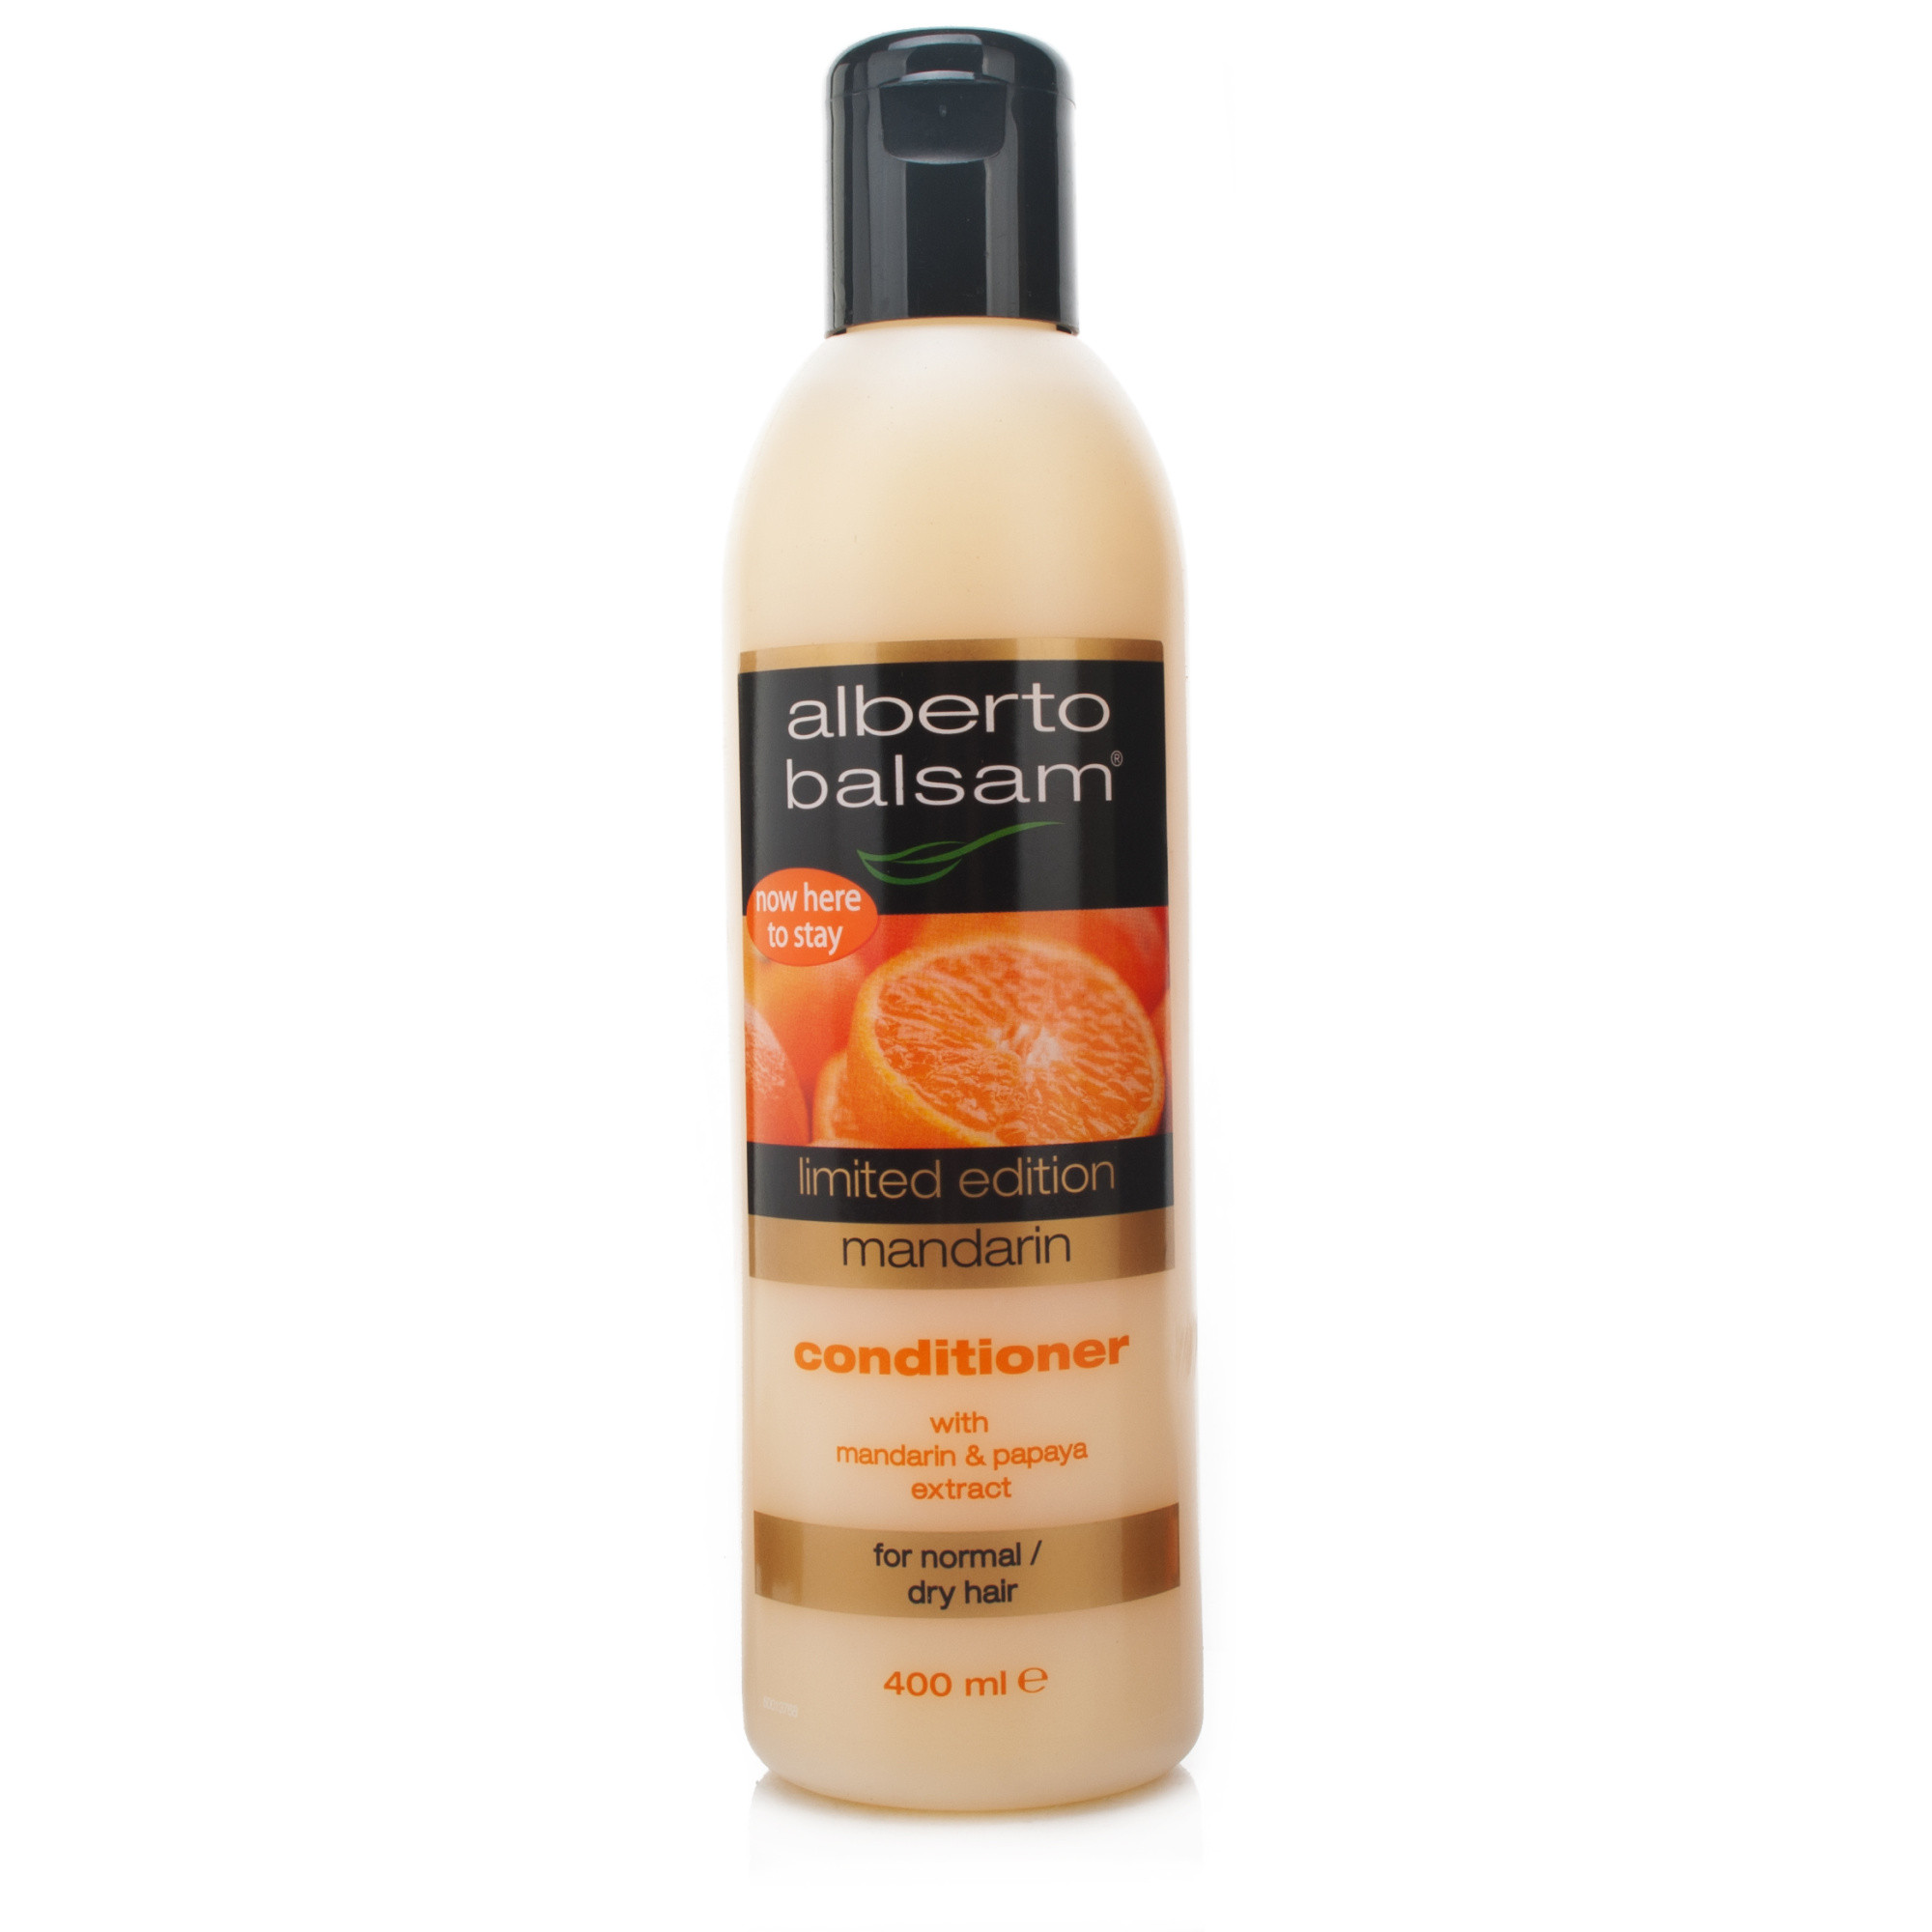 Alberto Balsam Limited Edition Mandarin Conditioner